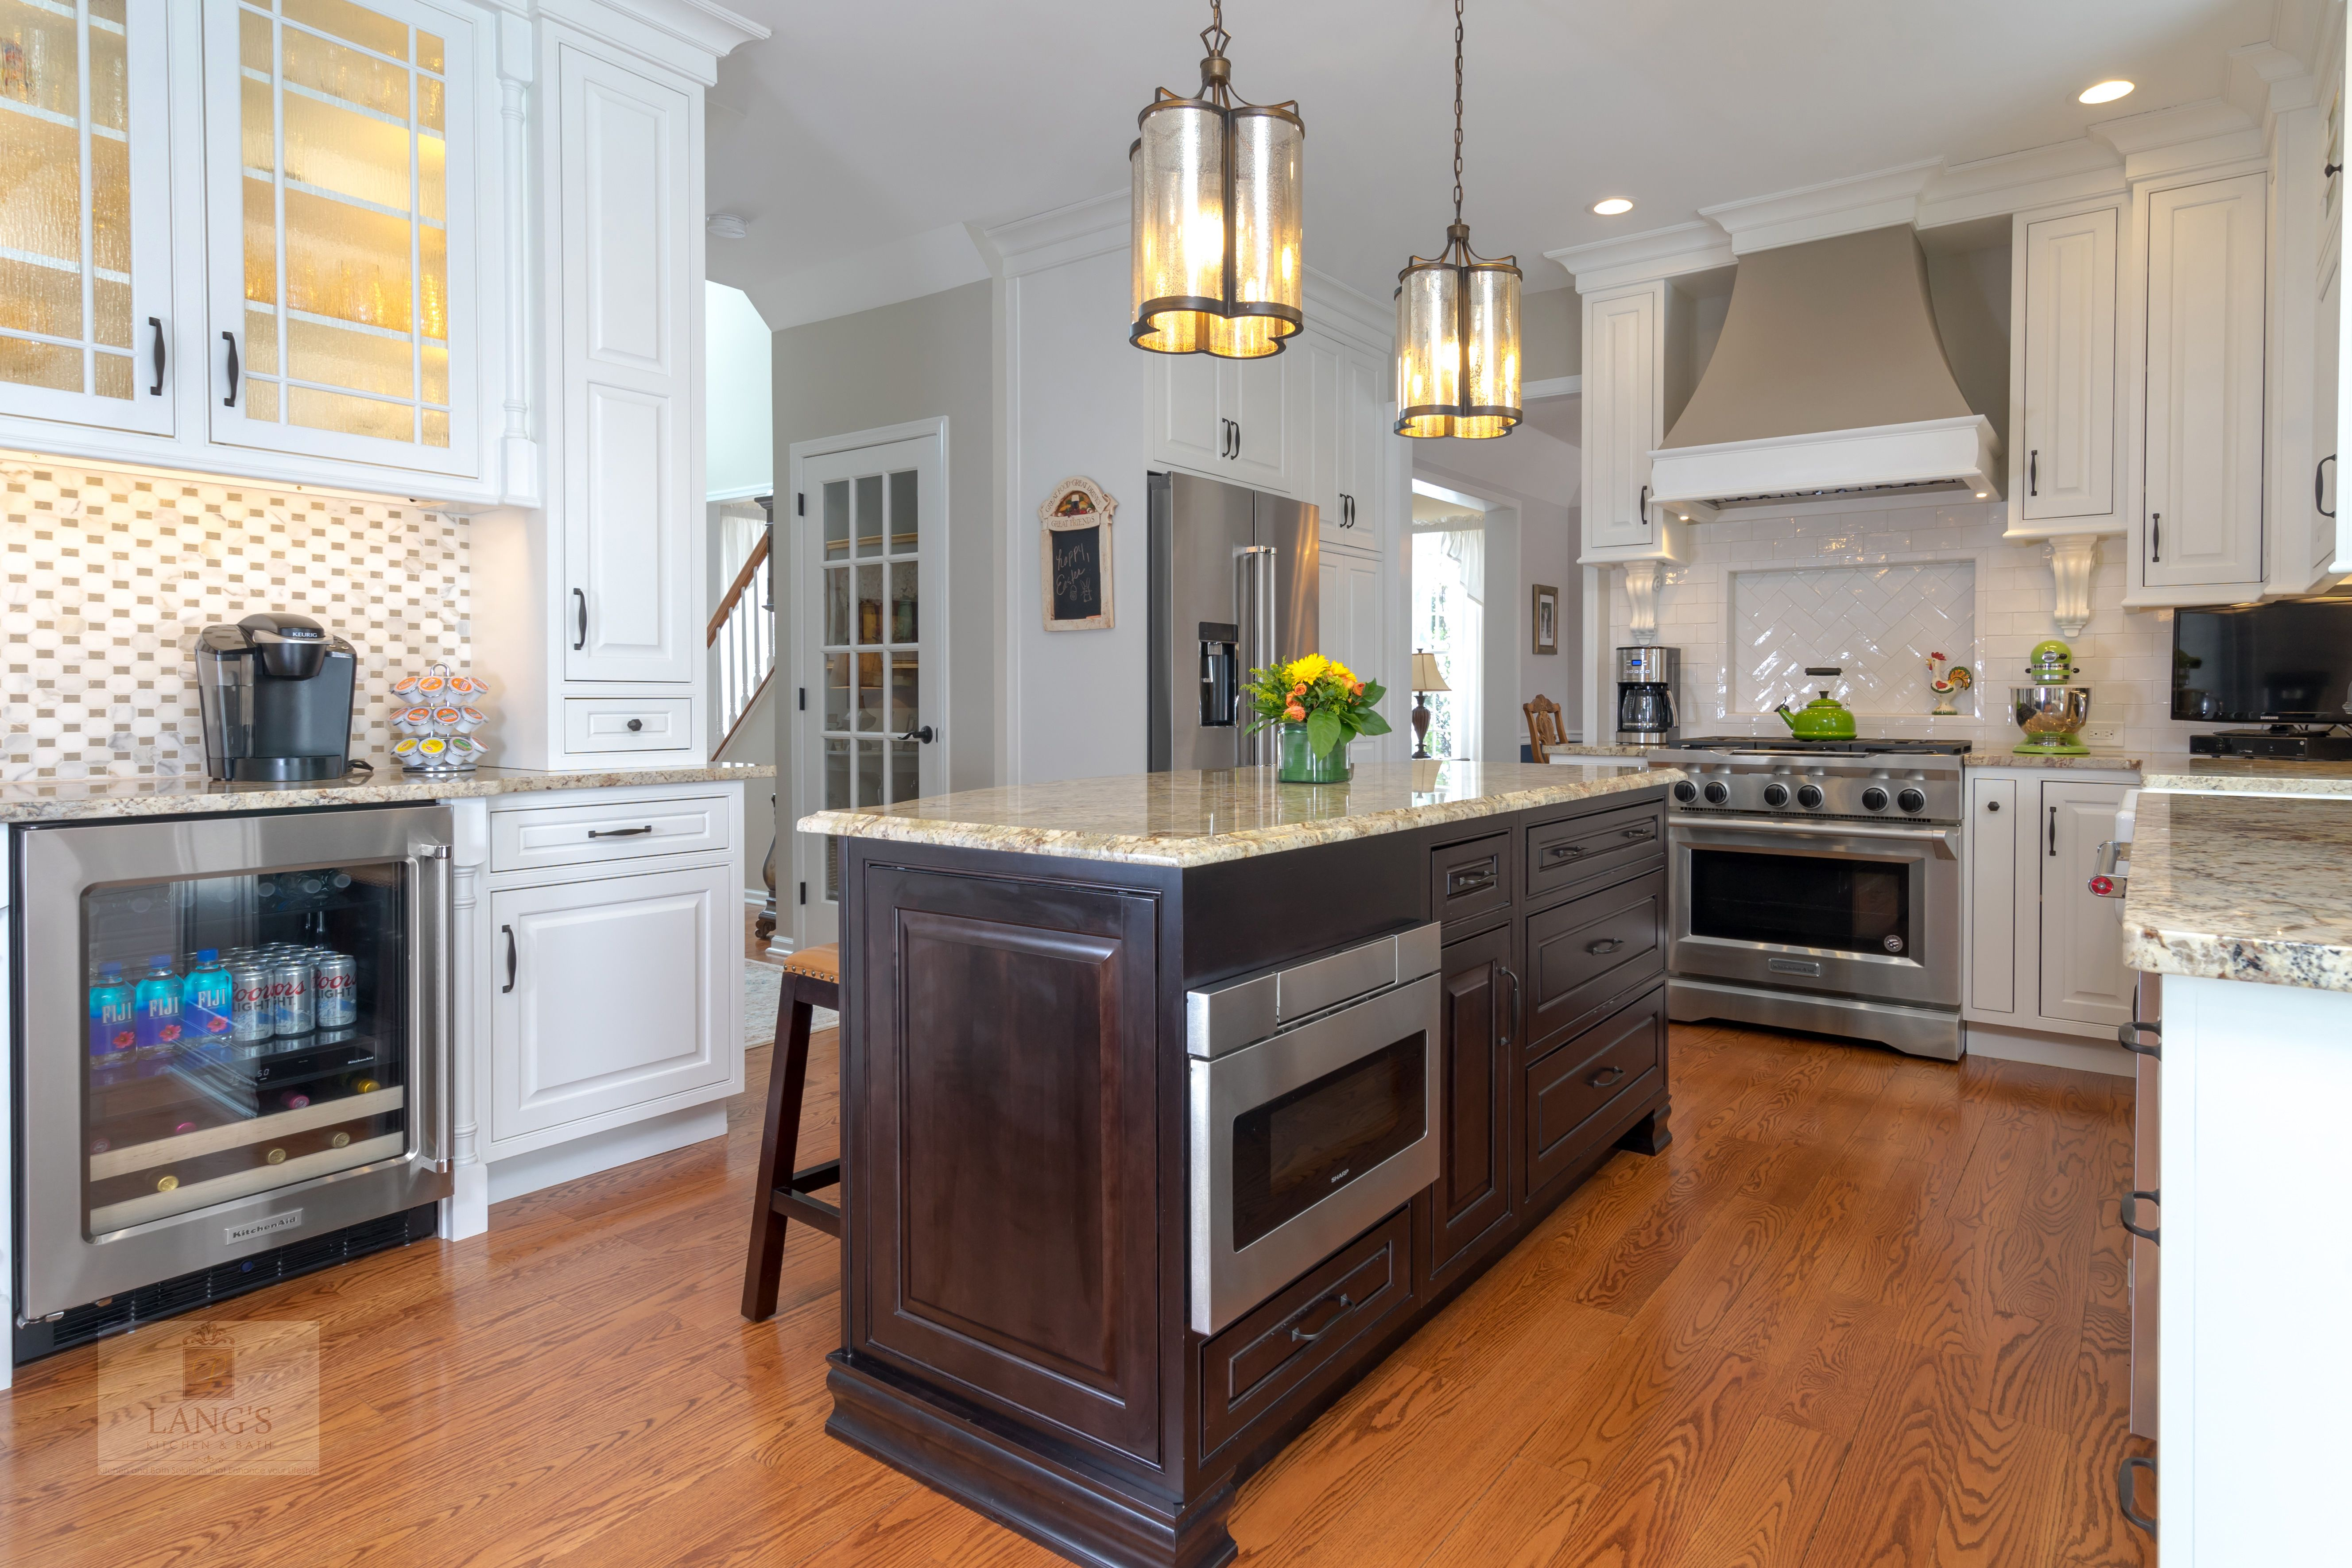 The Painted White Durasupreme Kitchen Cabinets Create A Bright Backdrop For This Traditional Style Kitchen Kitchen Design Kitchen Appliances High End Kitchens